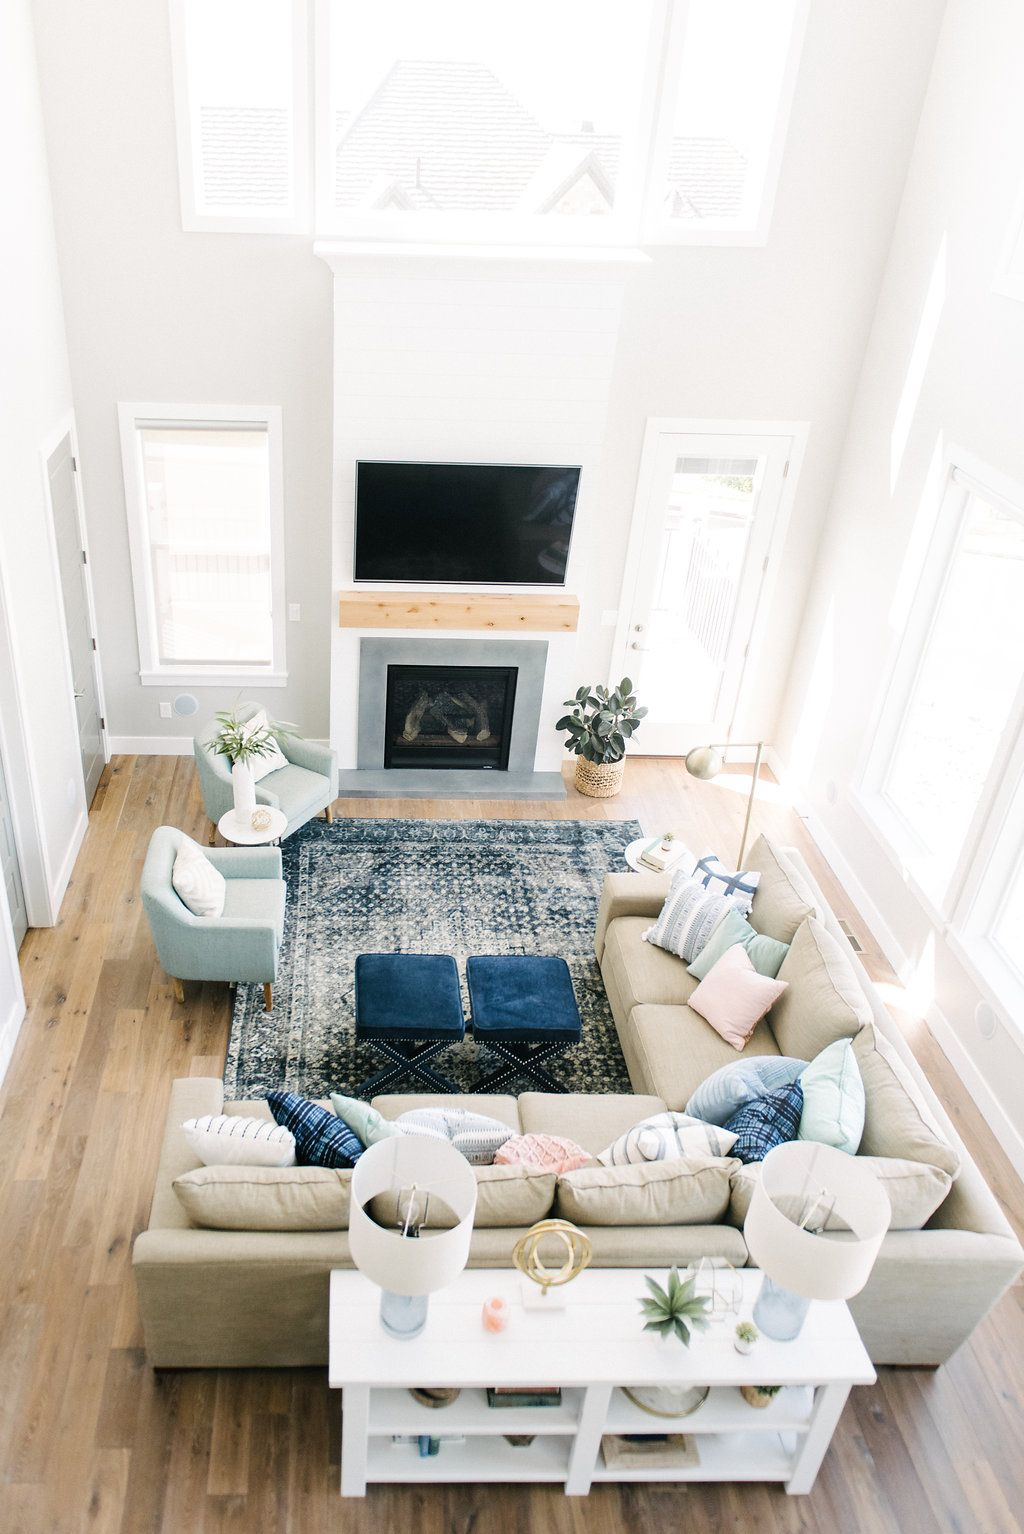 How Awesome Is This Family Room The Fireplace Design With Shi